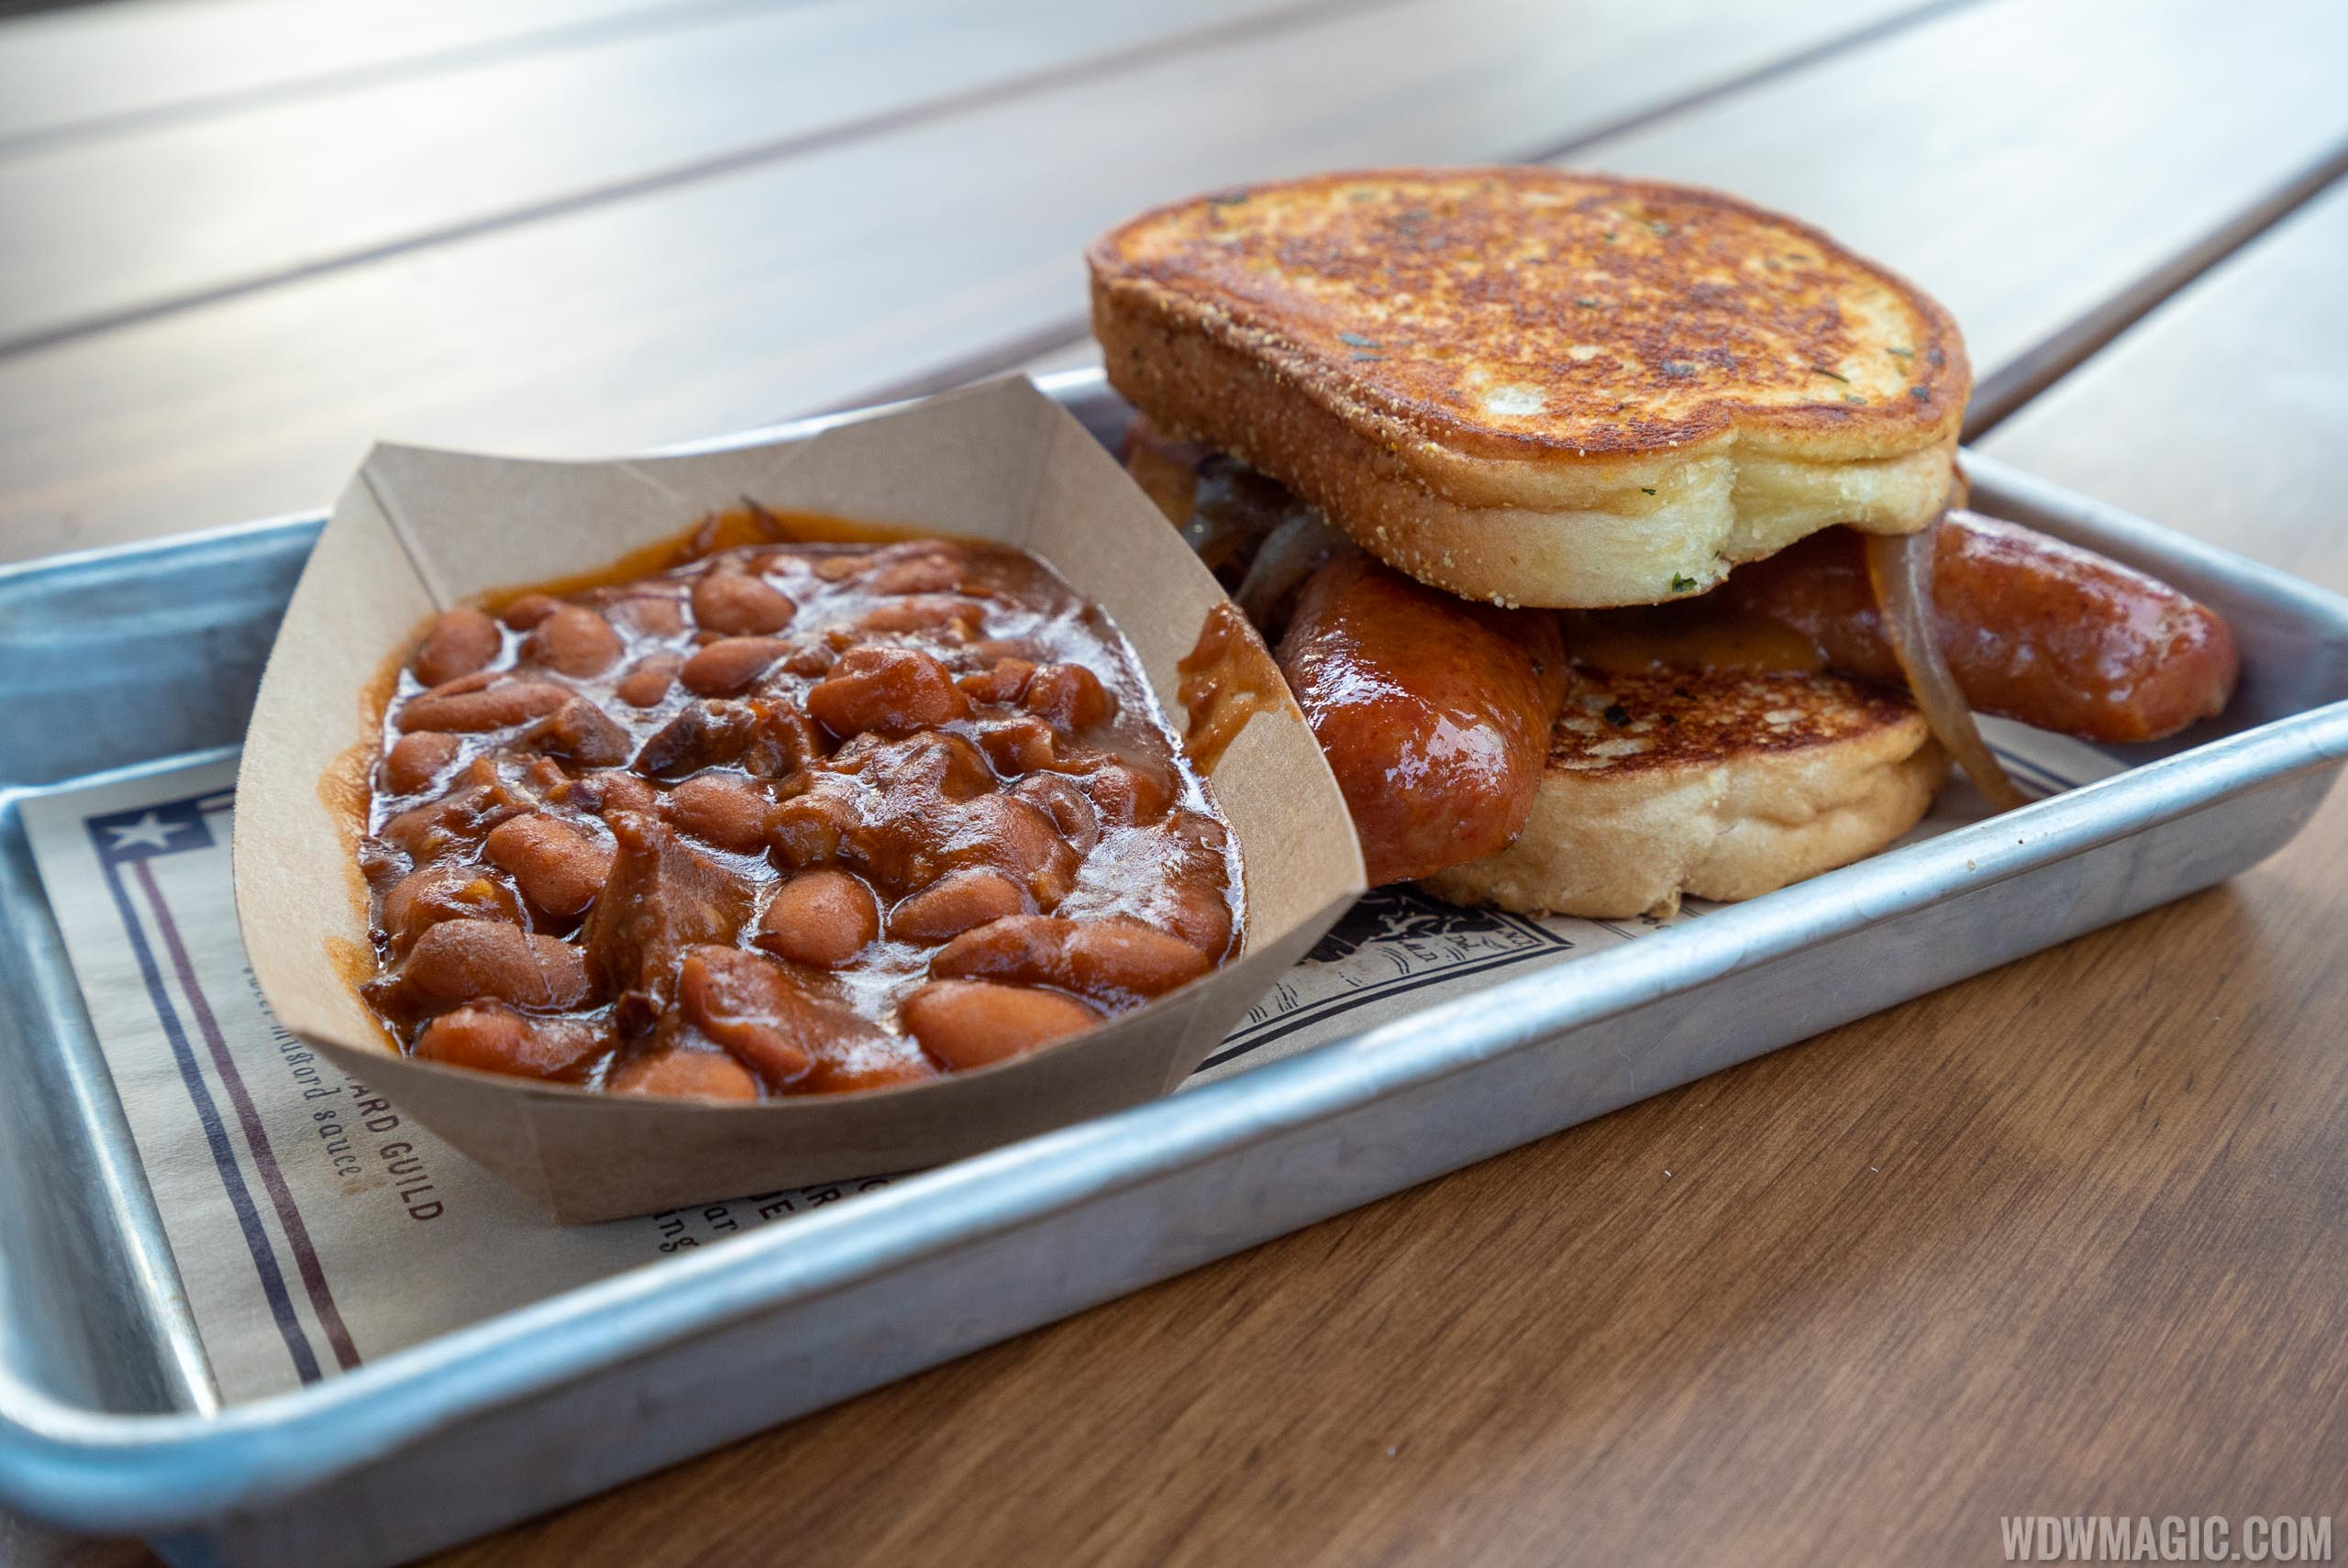 Regal Eagle Smokehouse - South Carolina Smoked Sausage Sandwich with Baked Beans with Burnt Ends